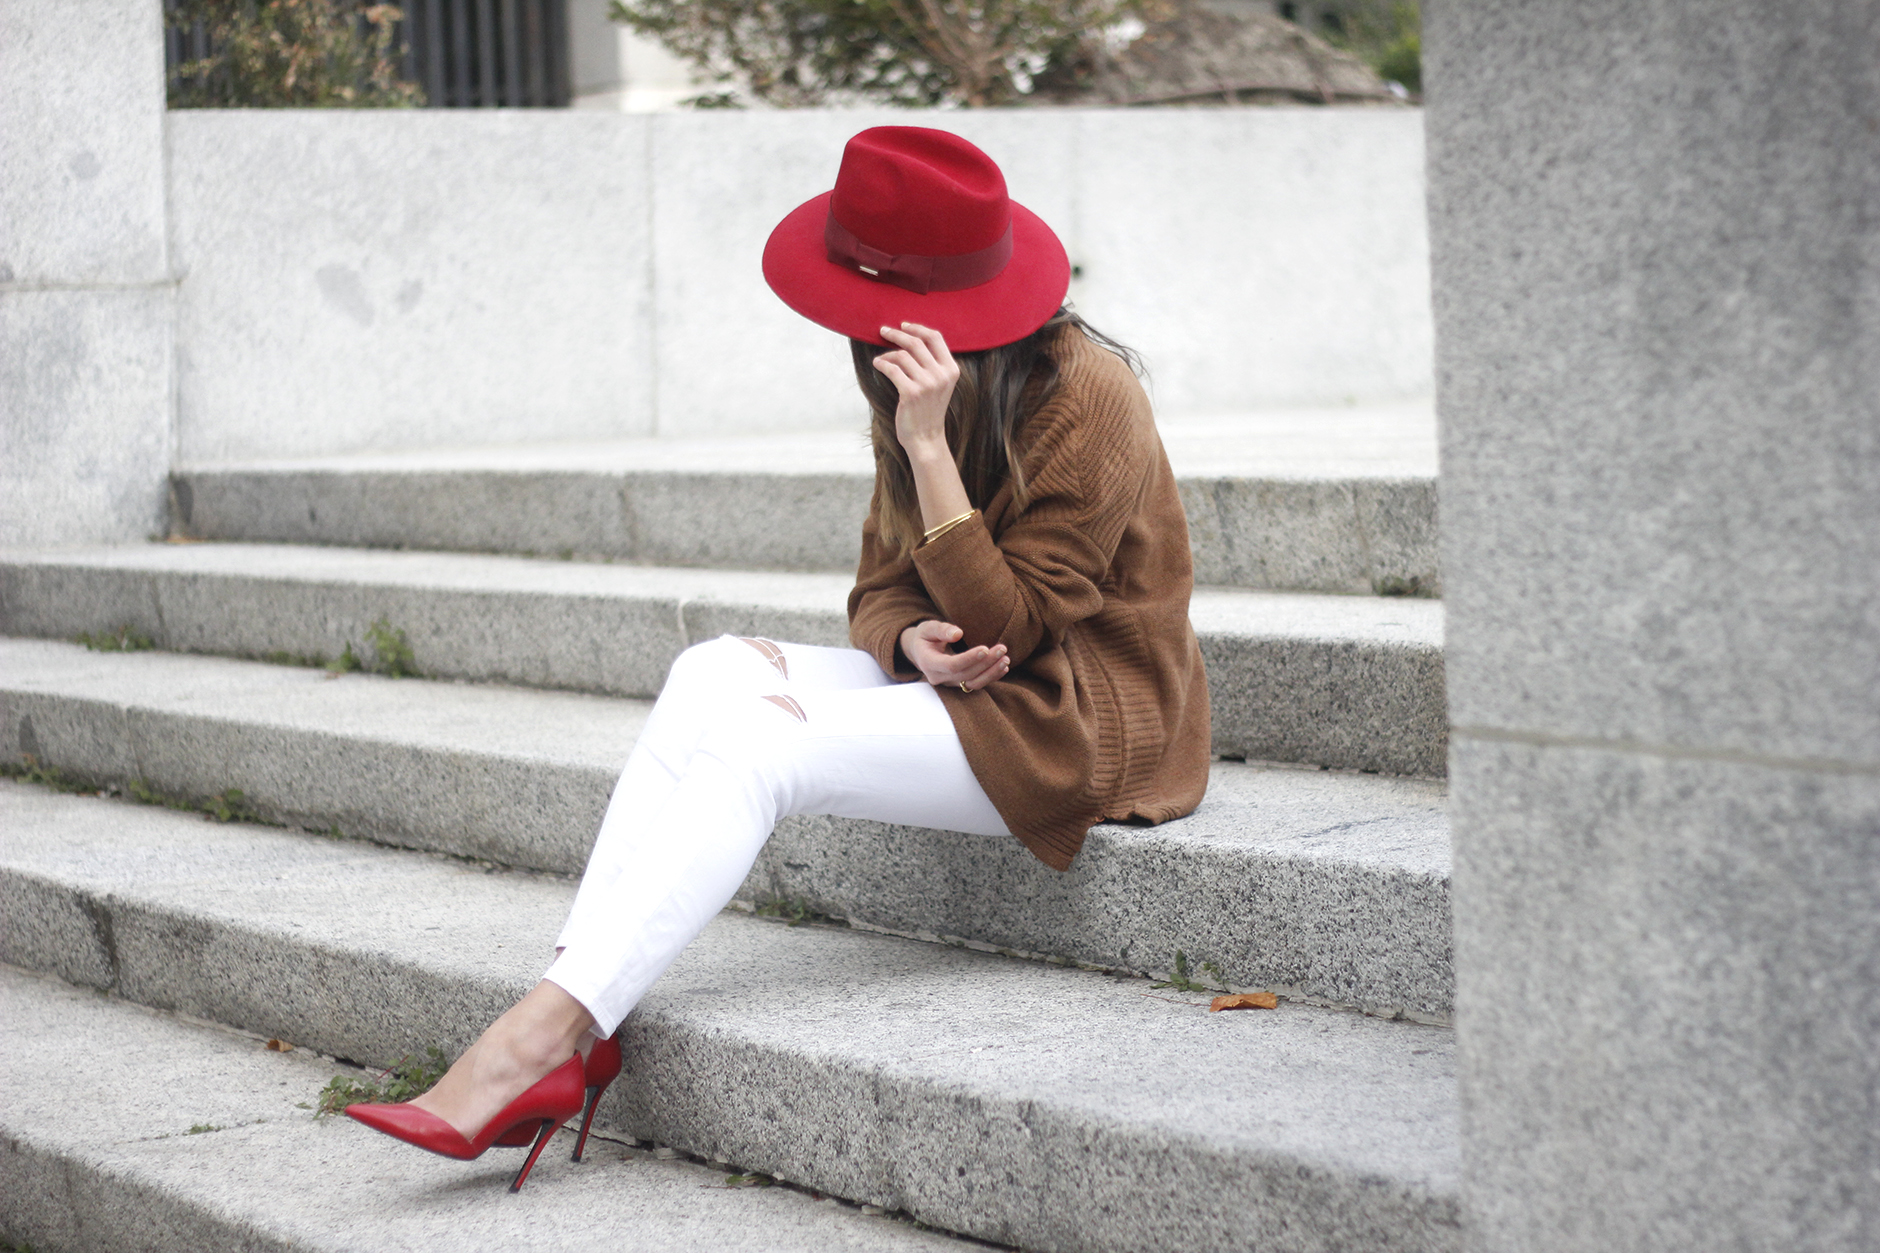 Turtleneck Sweater white jeans red heels red hat uterqüe outfit16